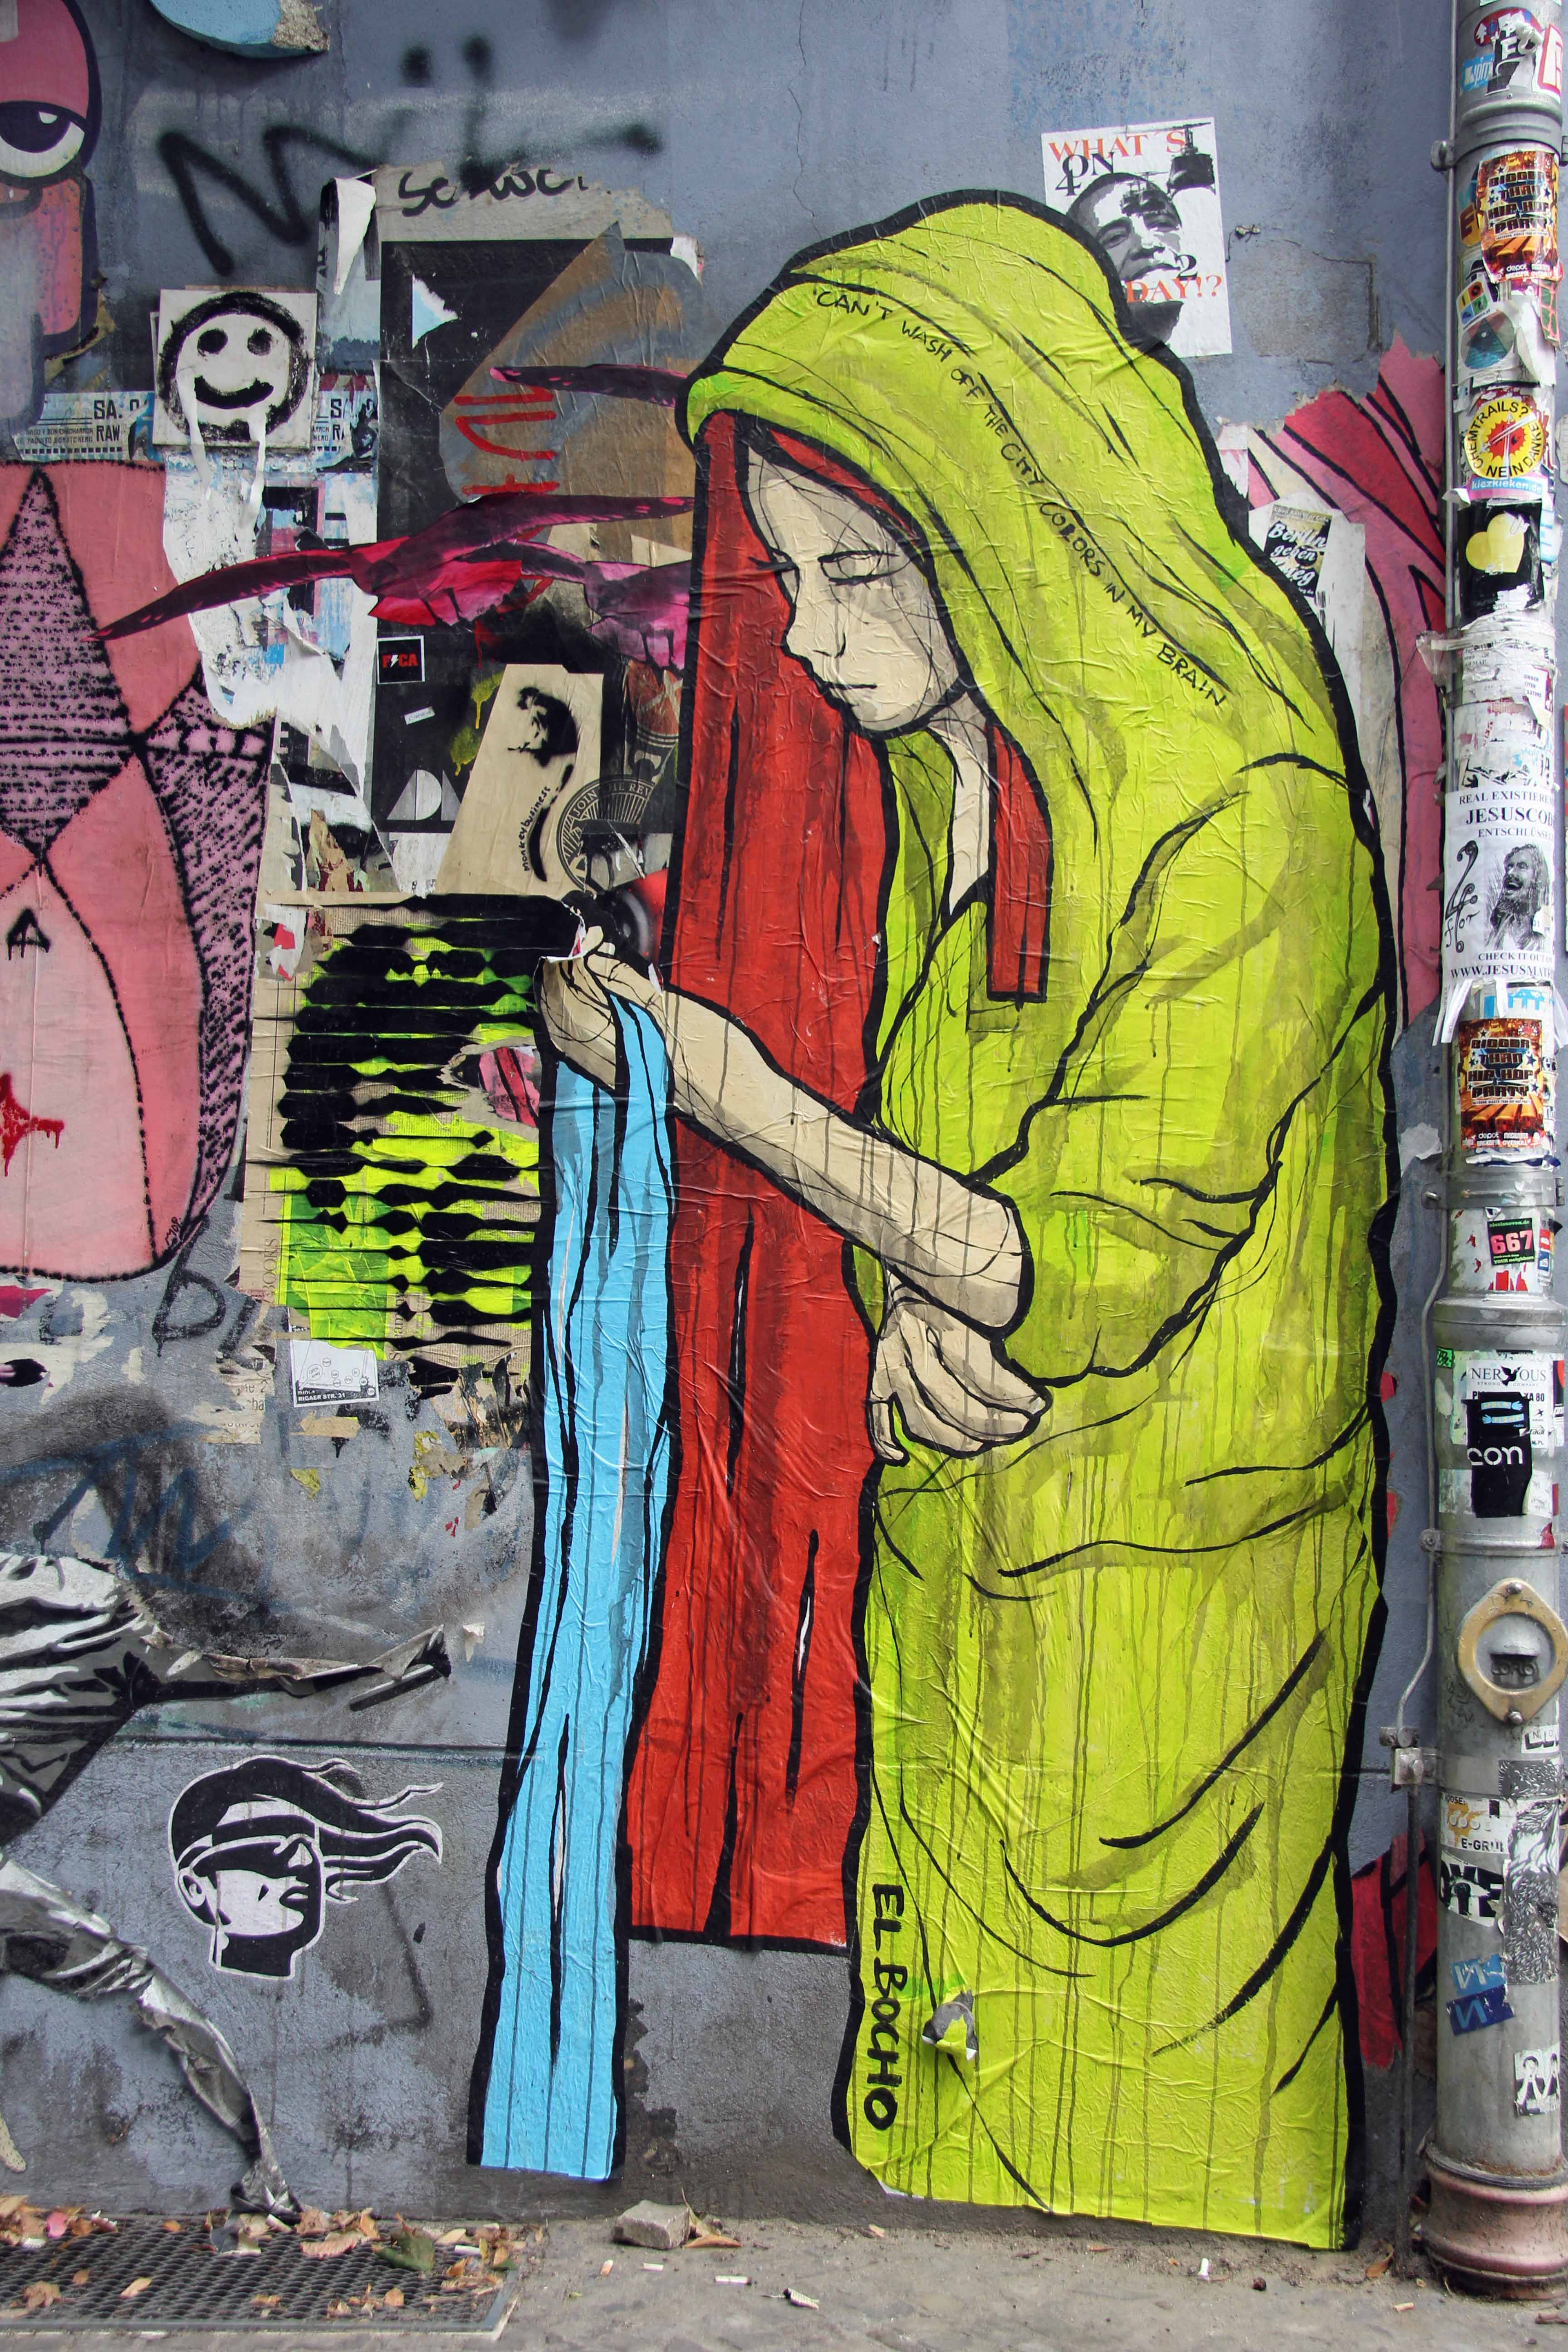 Can't Wash Off The City Colours In My Brain: Street Art by El Bocho in Berlin